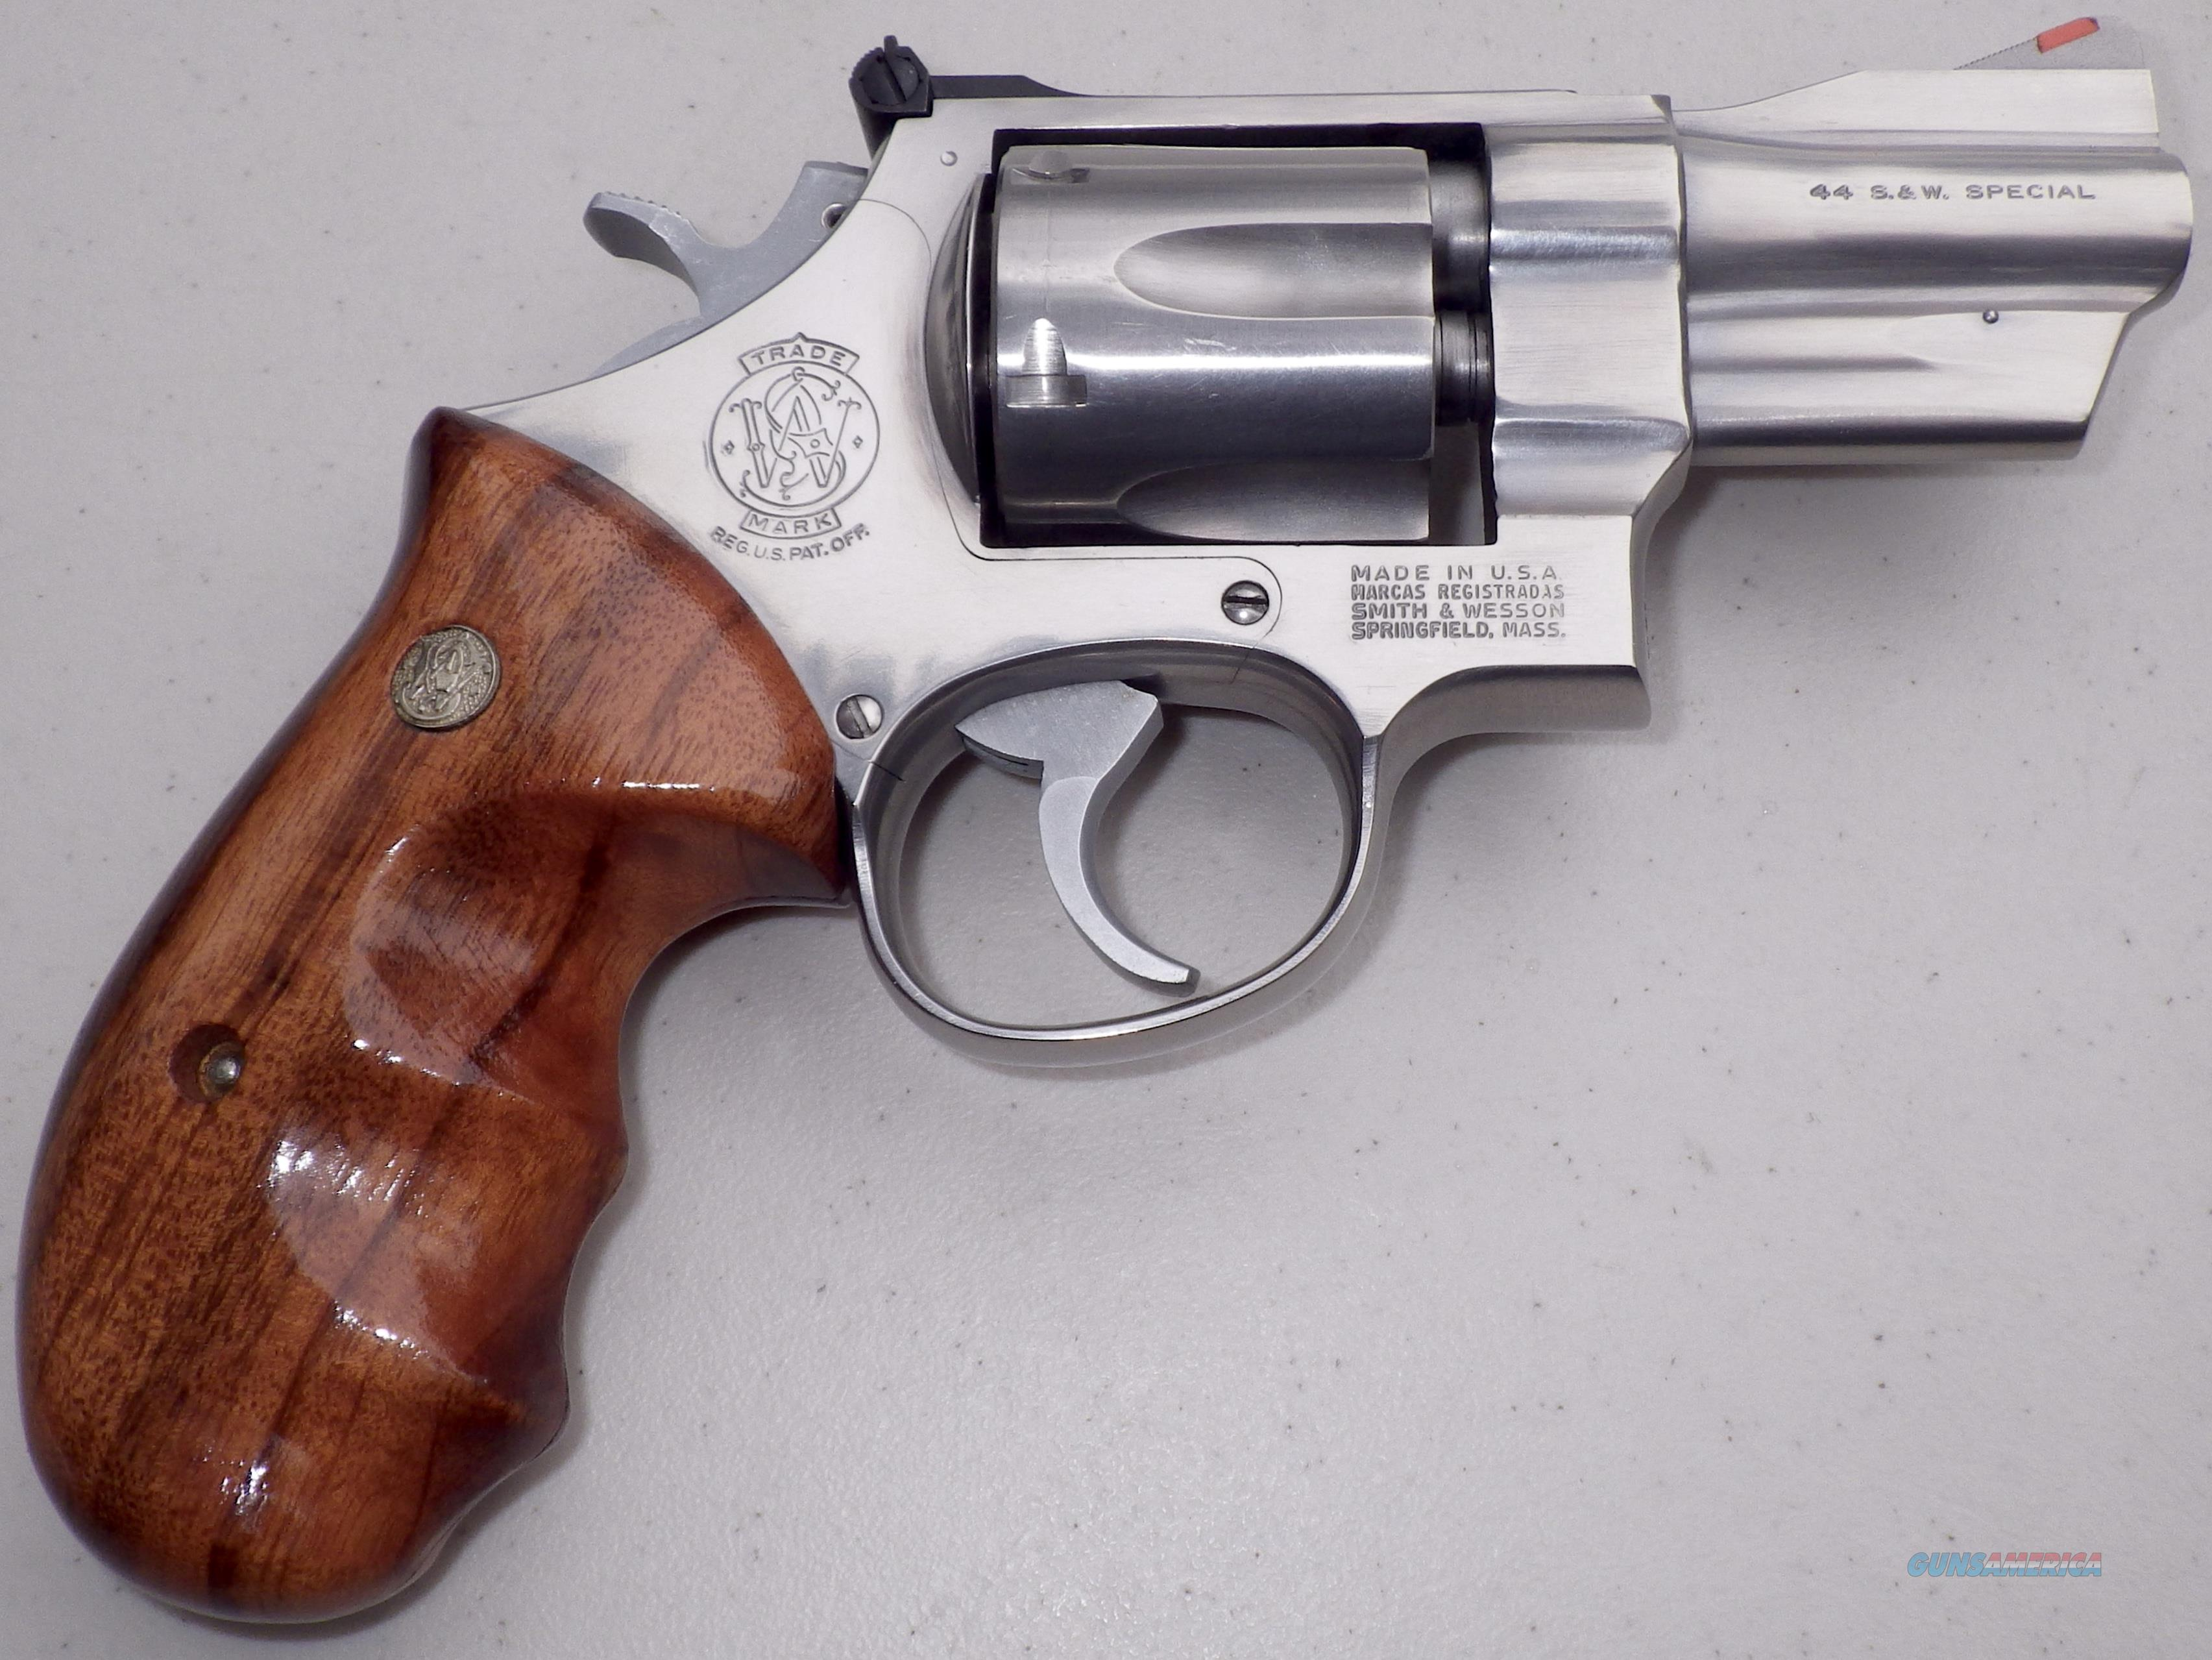 S&W Model 624 .44 Special, 2 7/8-inch barrel, round butt, unfired,   Guns > Pistols > Smith & Wesson Revolvers > Full Frame Revolver